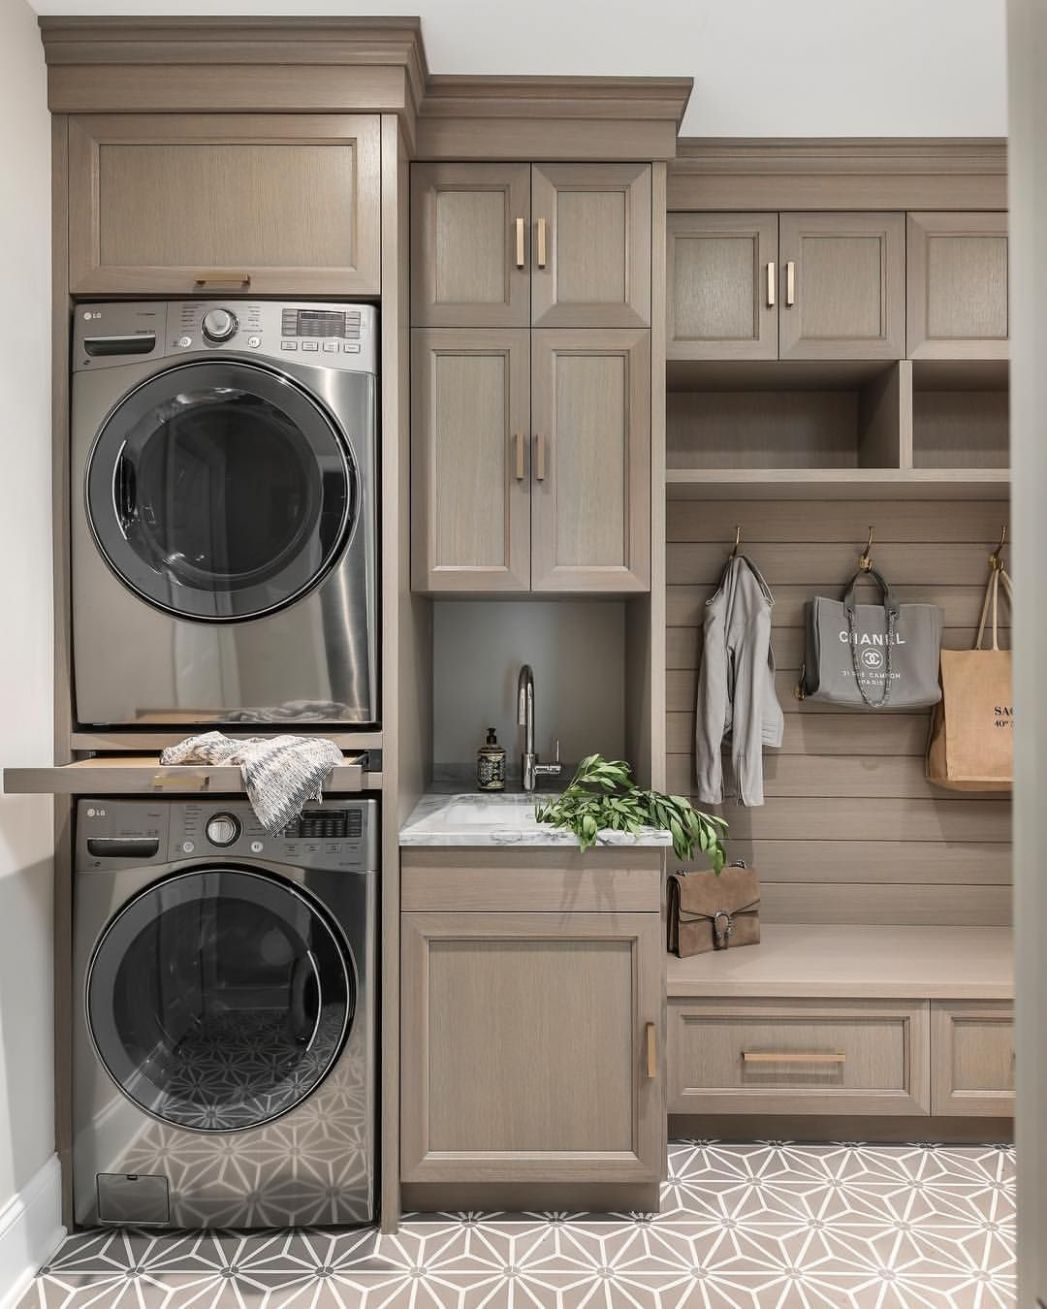 12 Best Small Laundry Room Design Ideas | Laundry room layouts ..